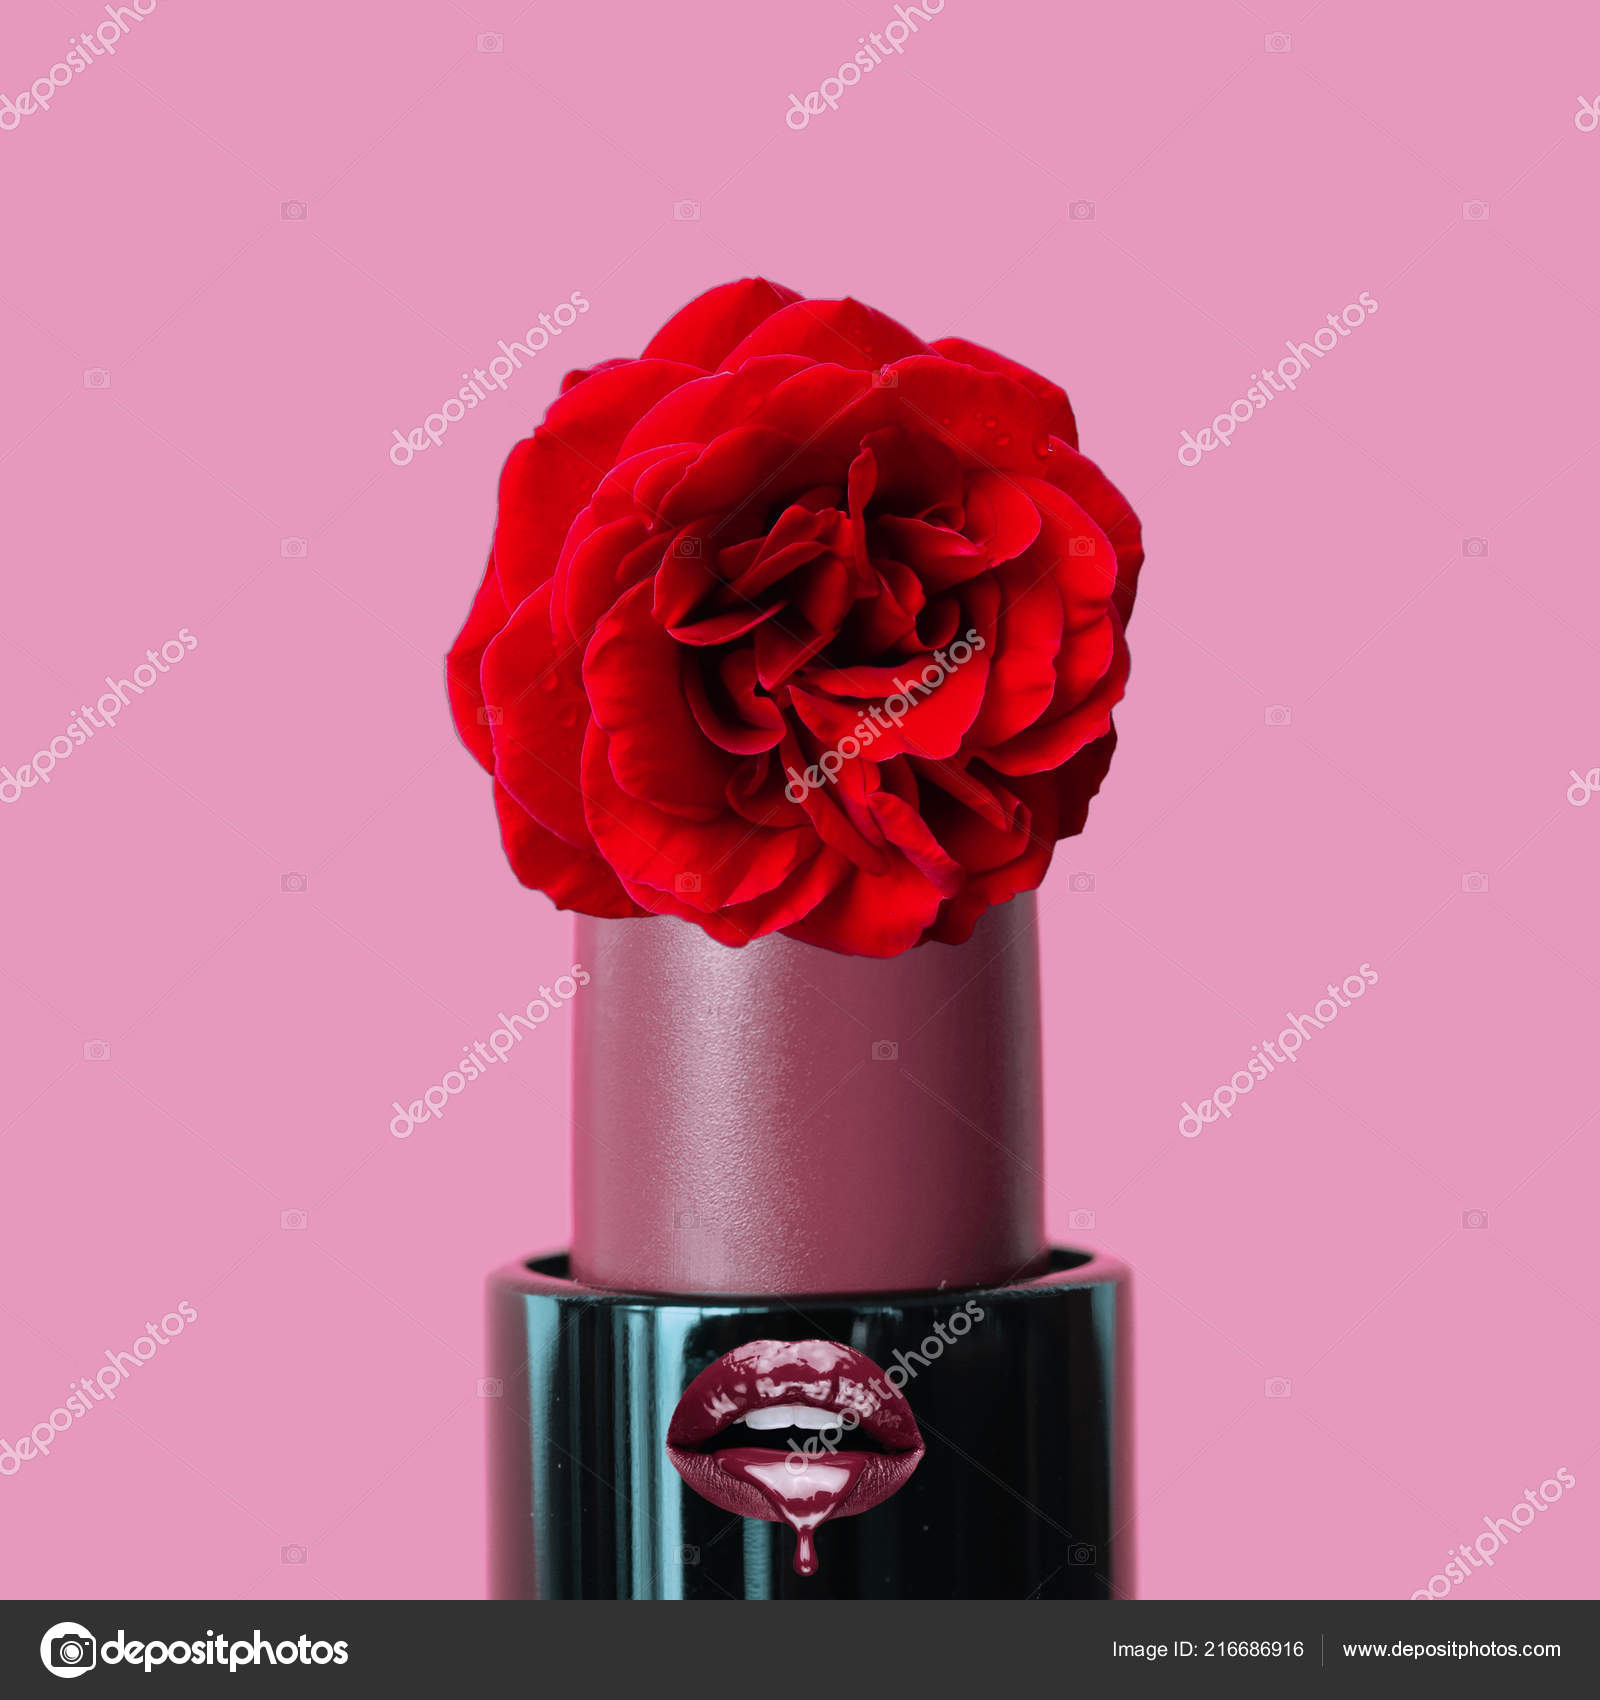 Abstract Art Collage Lipstick Red Rose Pink Background